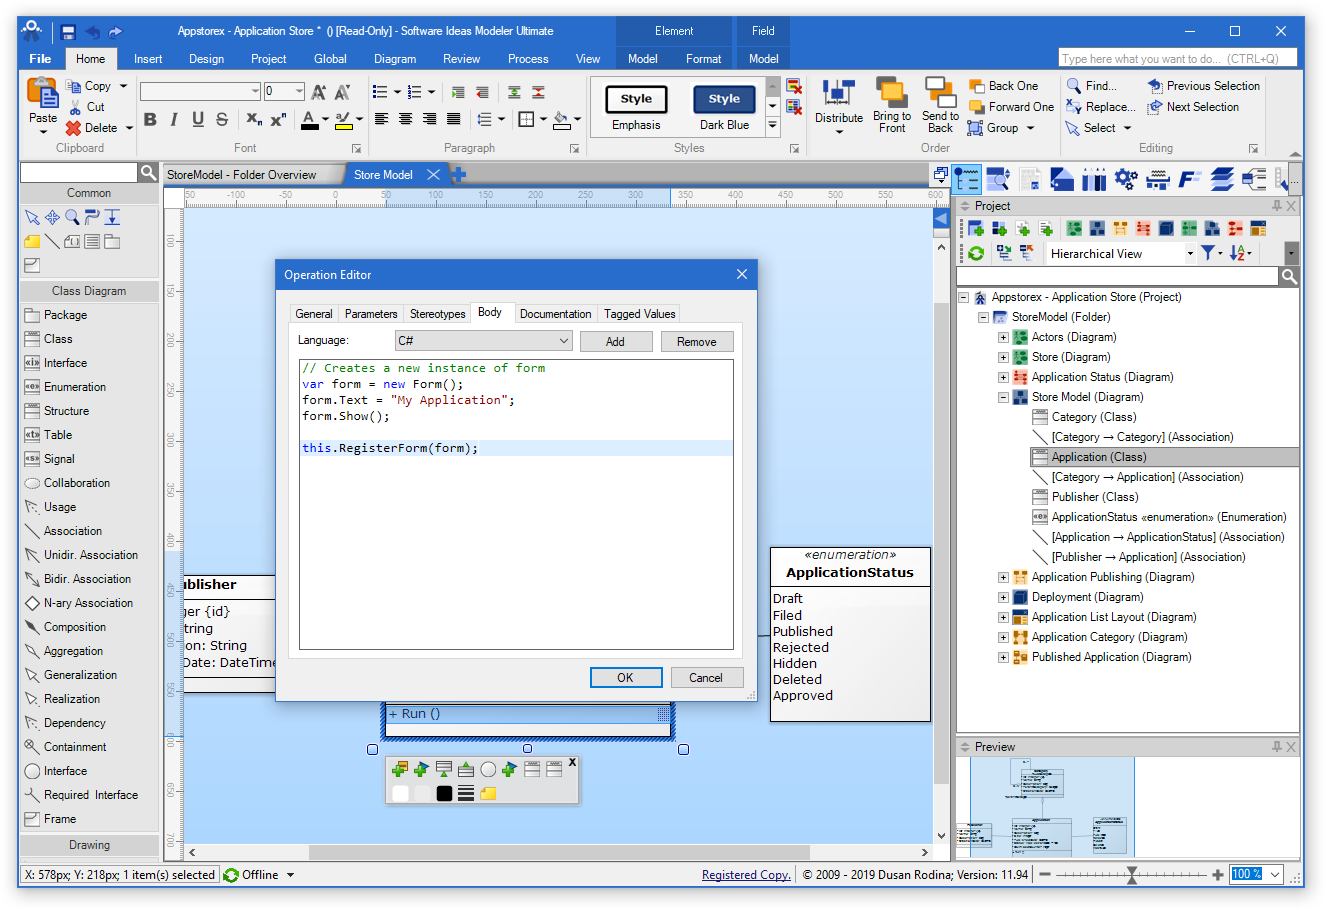 Software Ideas Modeler 11.94